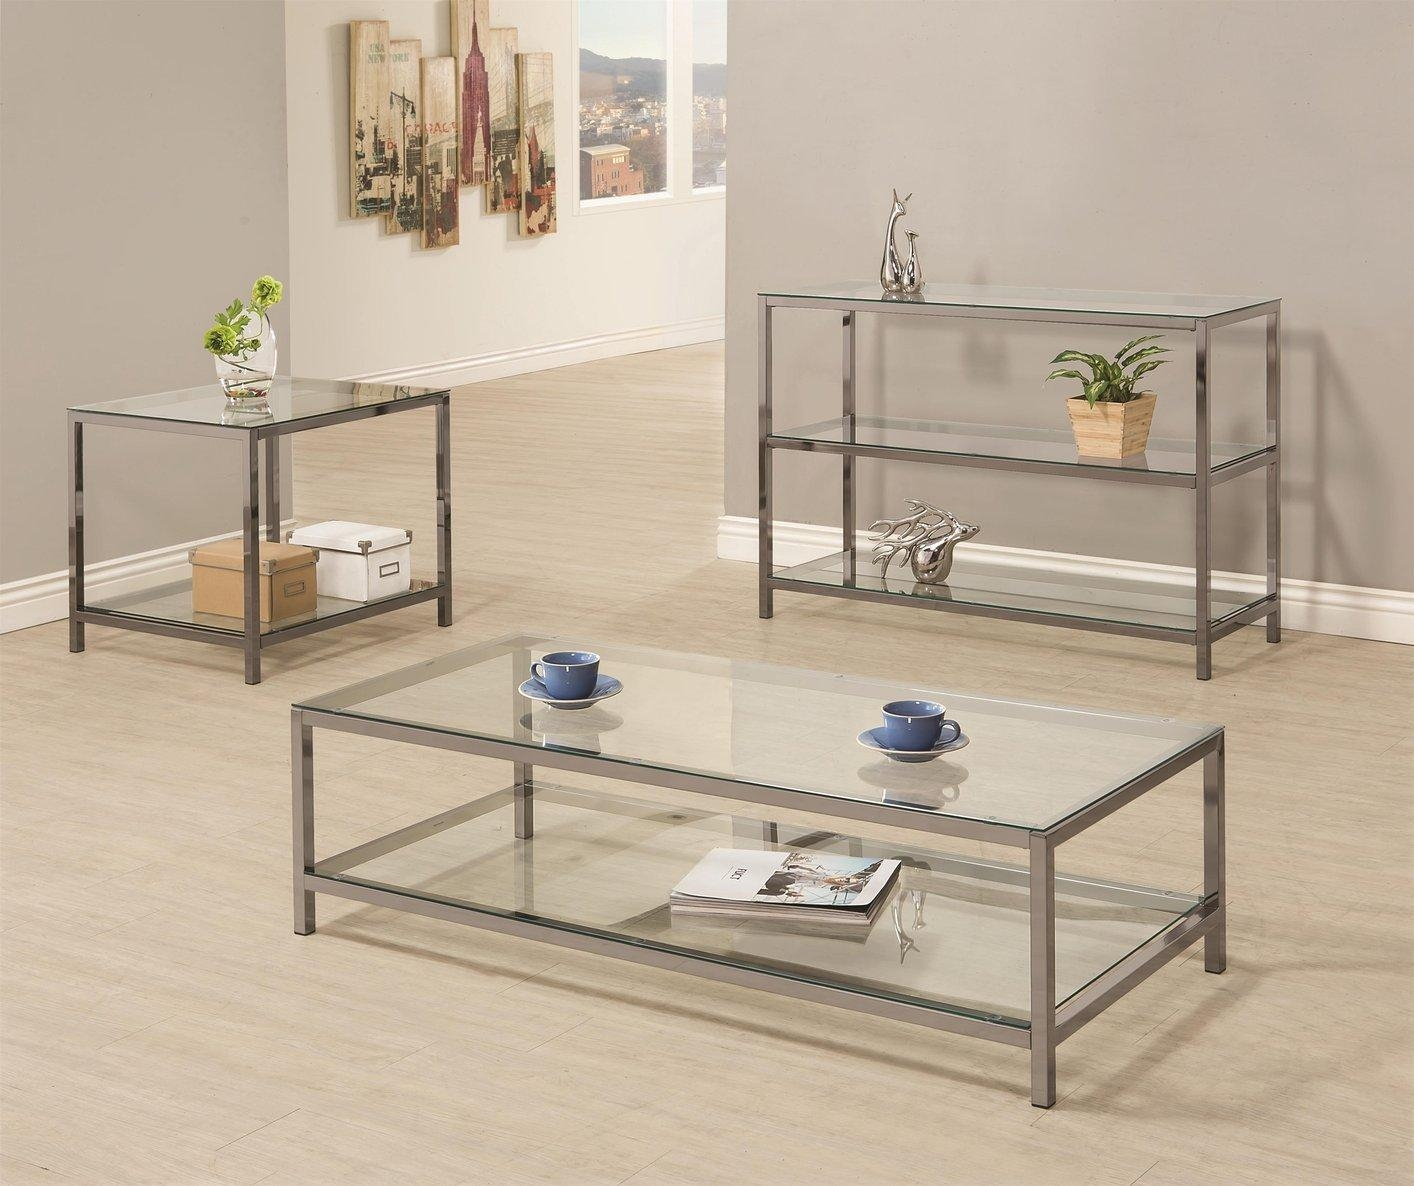 Glass Sofa Table 3 Set | Med Art Home Design Posters For Metal Glass Sofa Tables (Image 4 of 22)